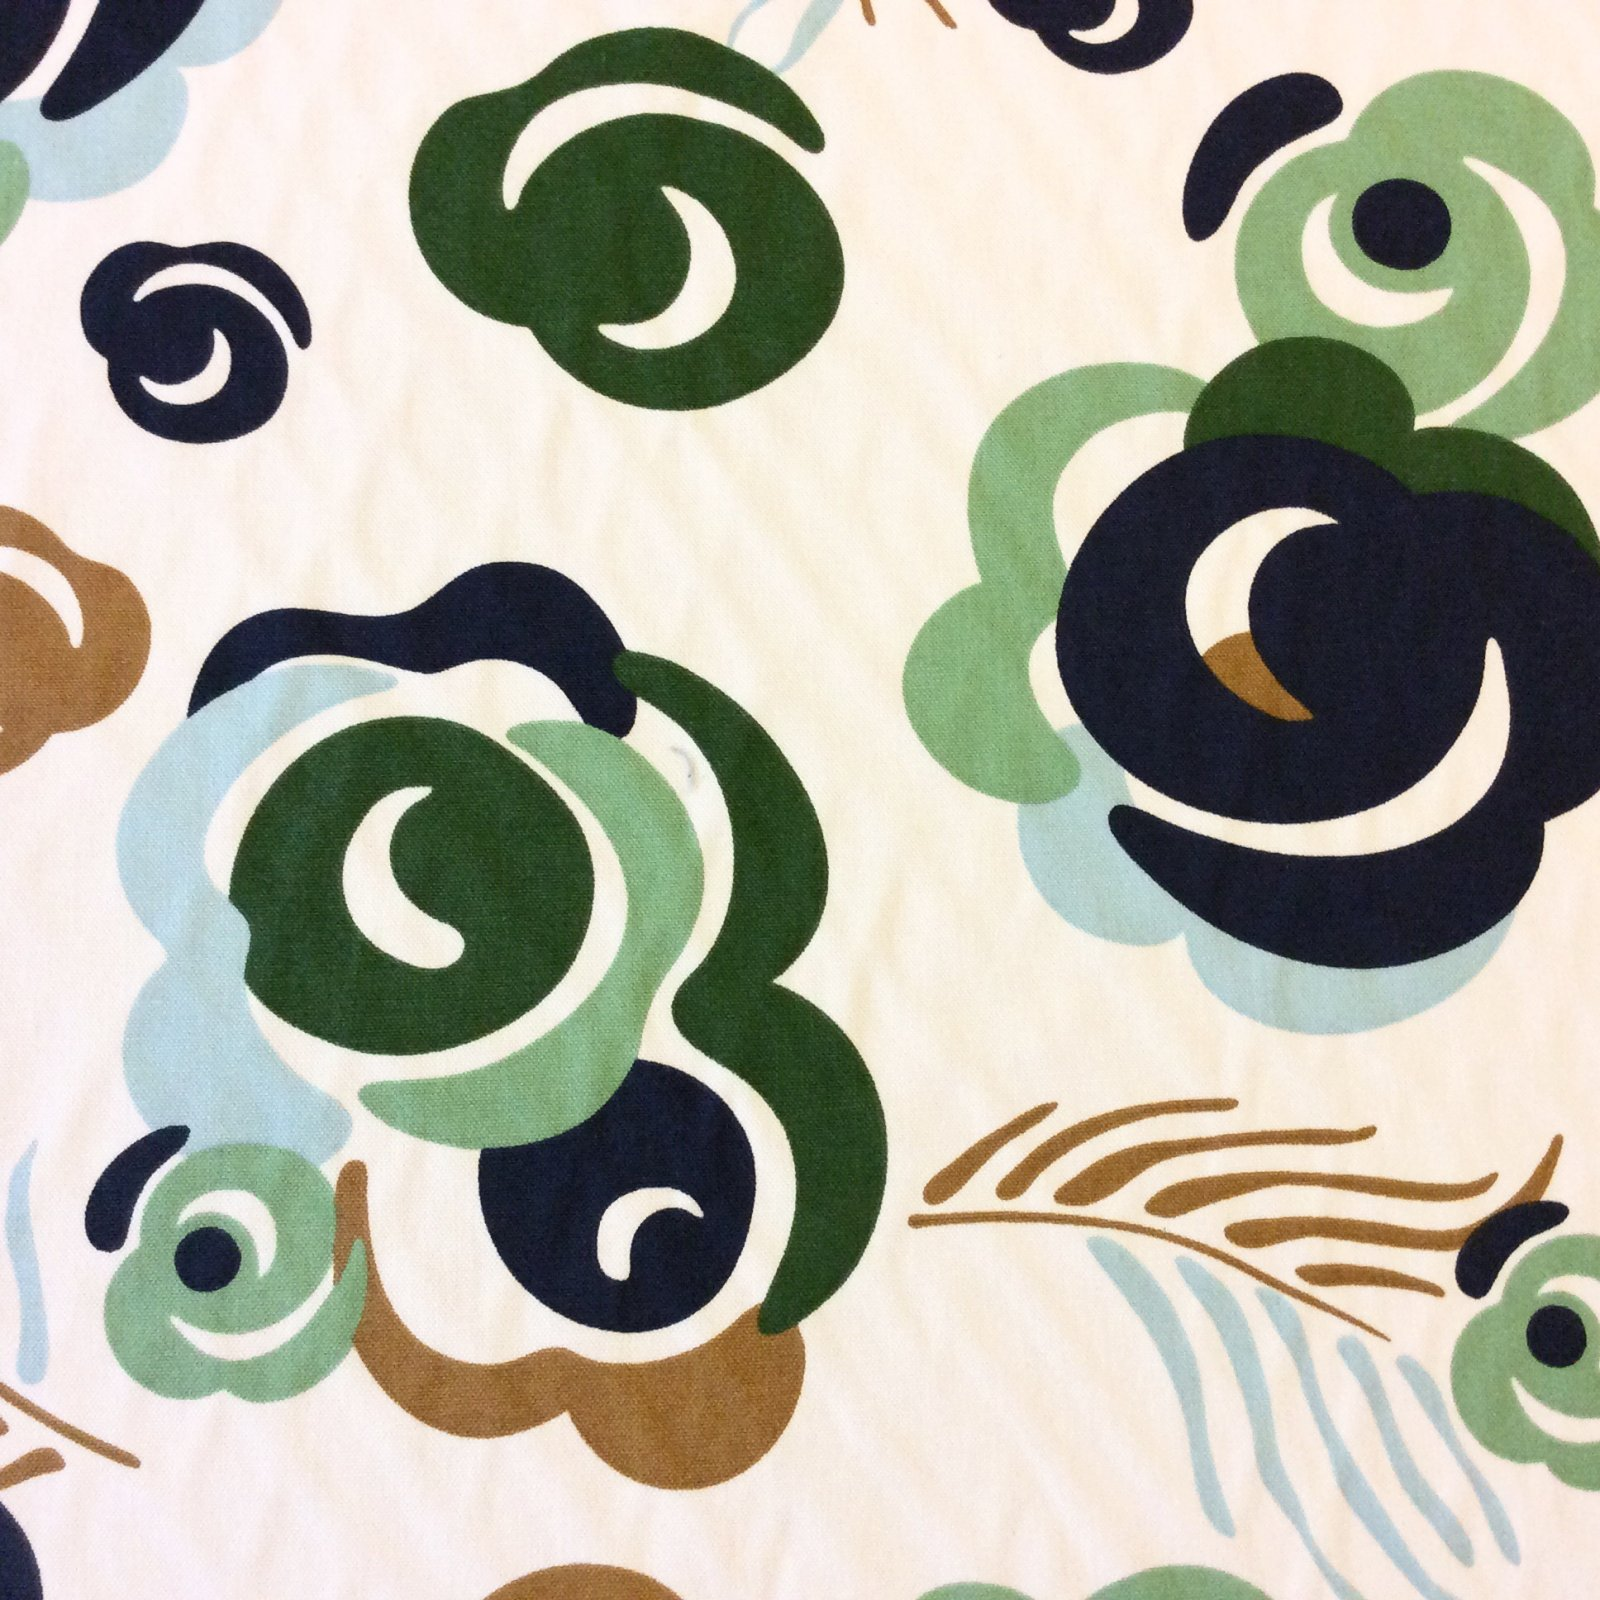 6 YARD BOLT!!! Modern Floral Cut out Contemporary Green Blue Heavy Weight Dwell Home Dec Cotton Fabric LHD206